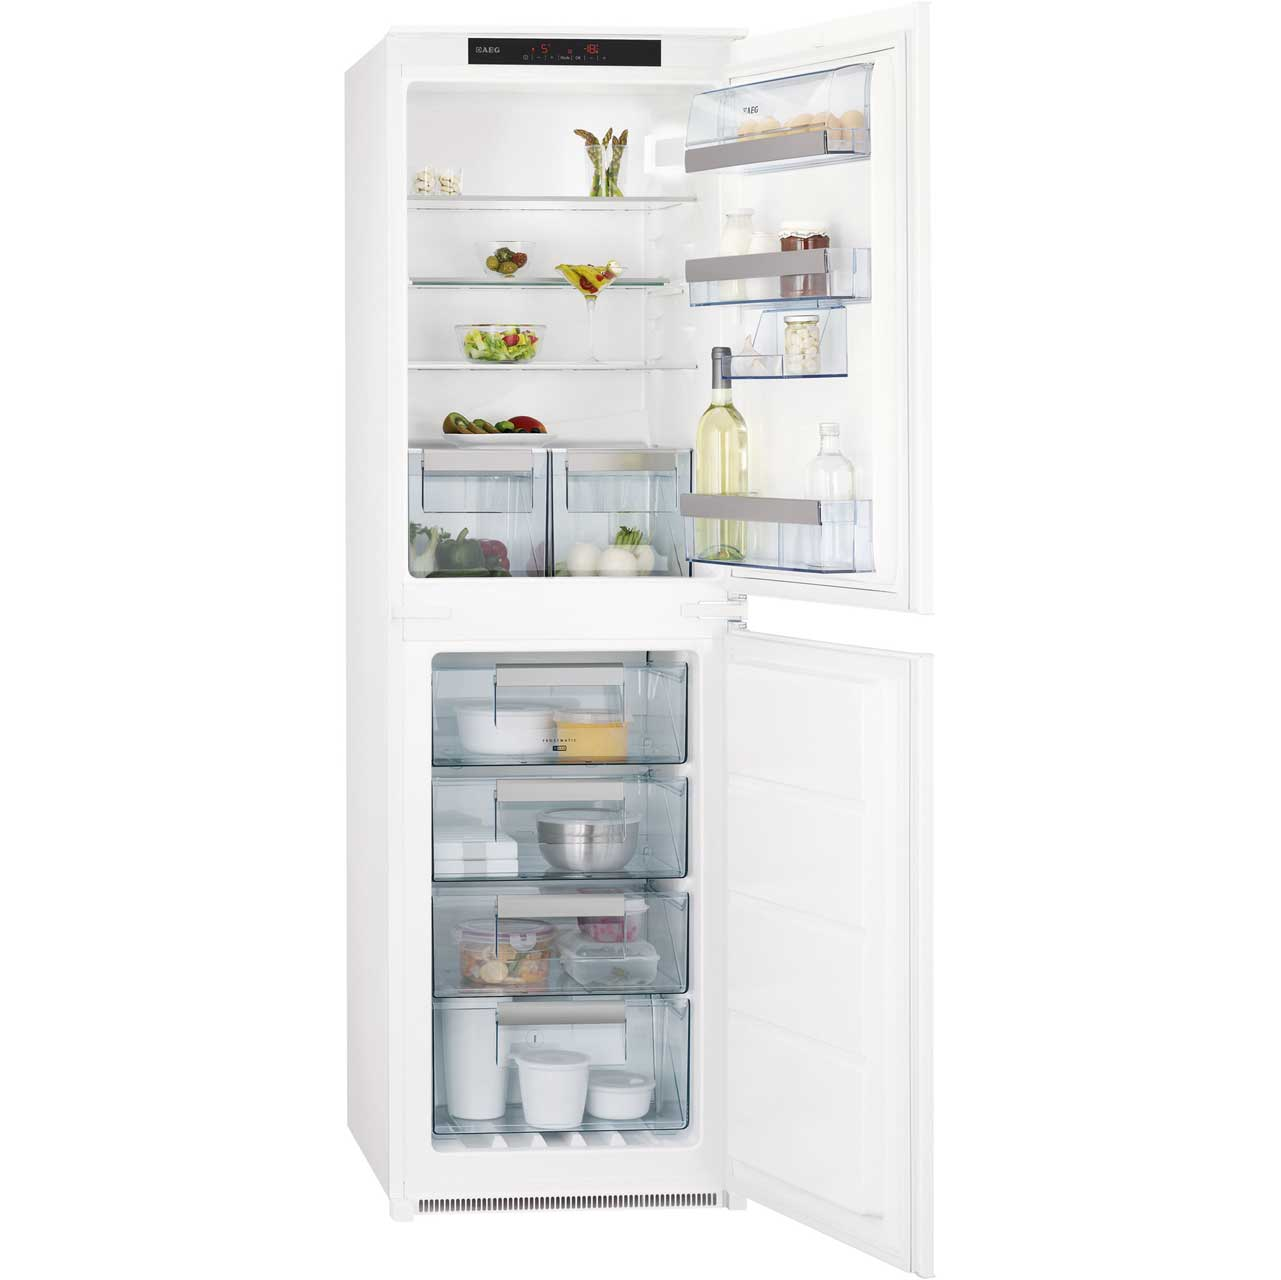 AEG SCN71800S1 Integrated 50/50 Frost Free Fridge Freezer - White